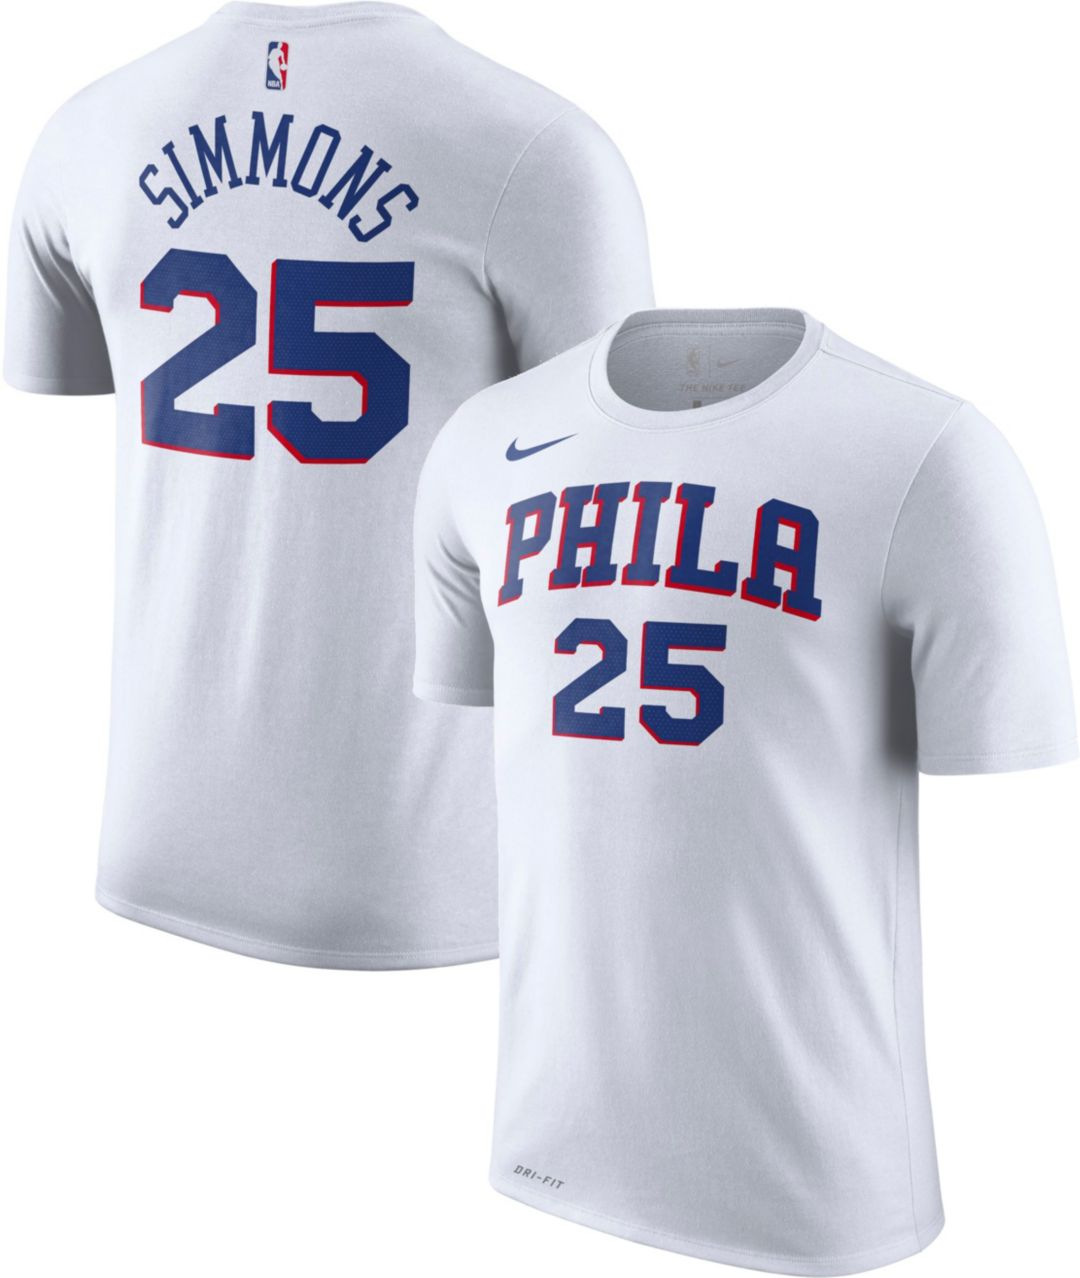 purchase cheap f7a57 f44d4 Nike Men's Philadelphia 76ers Ben Simmons #25 Dri-FIT White T-Shirt